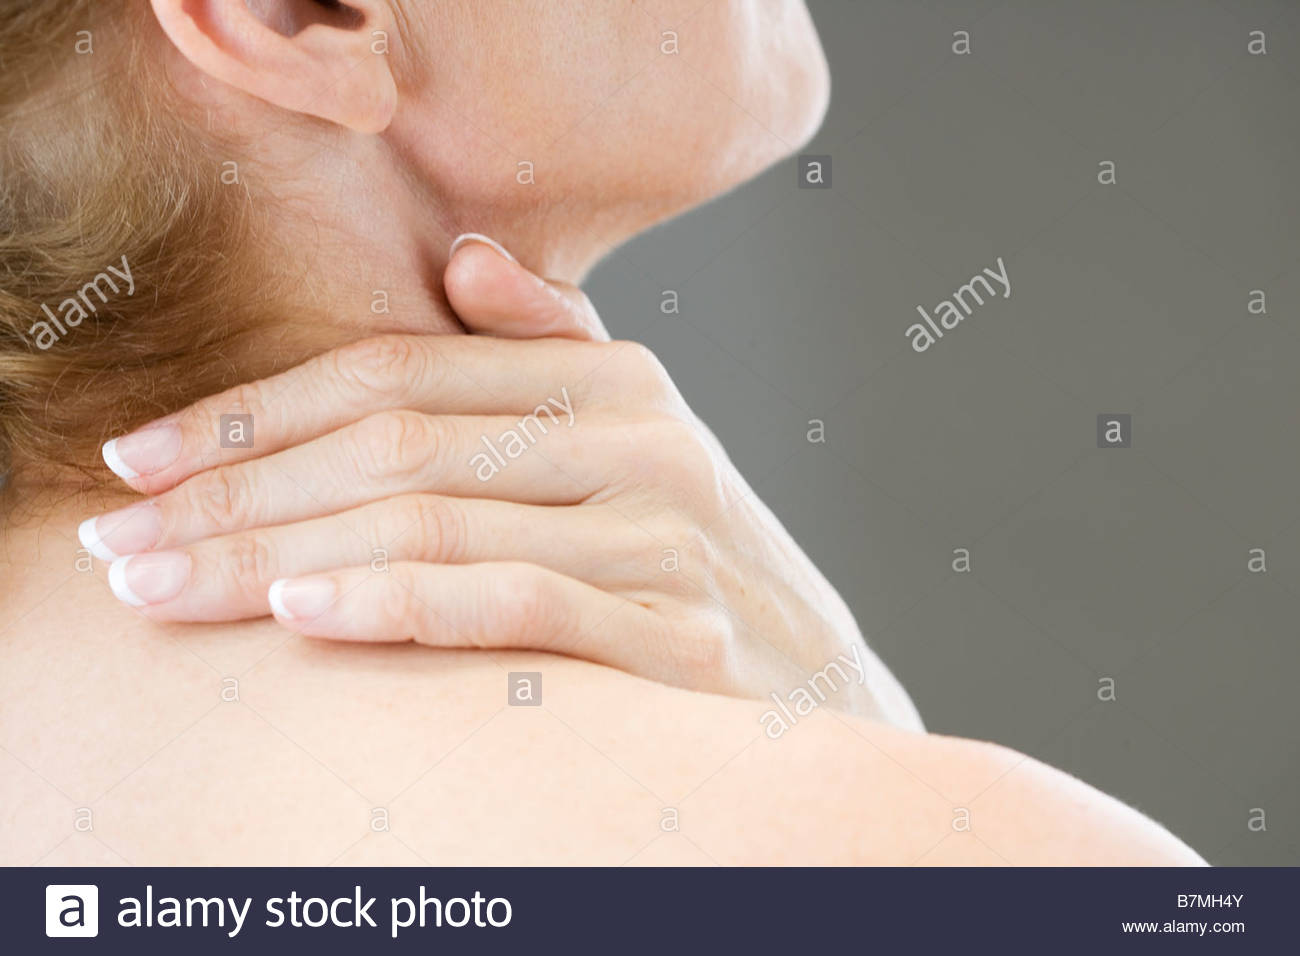 A woman with neck tension or backache - Stock Image